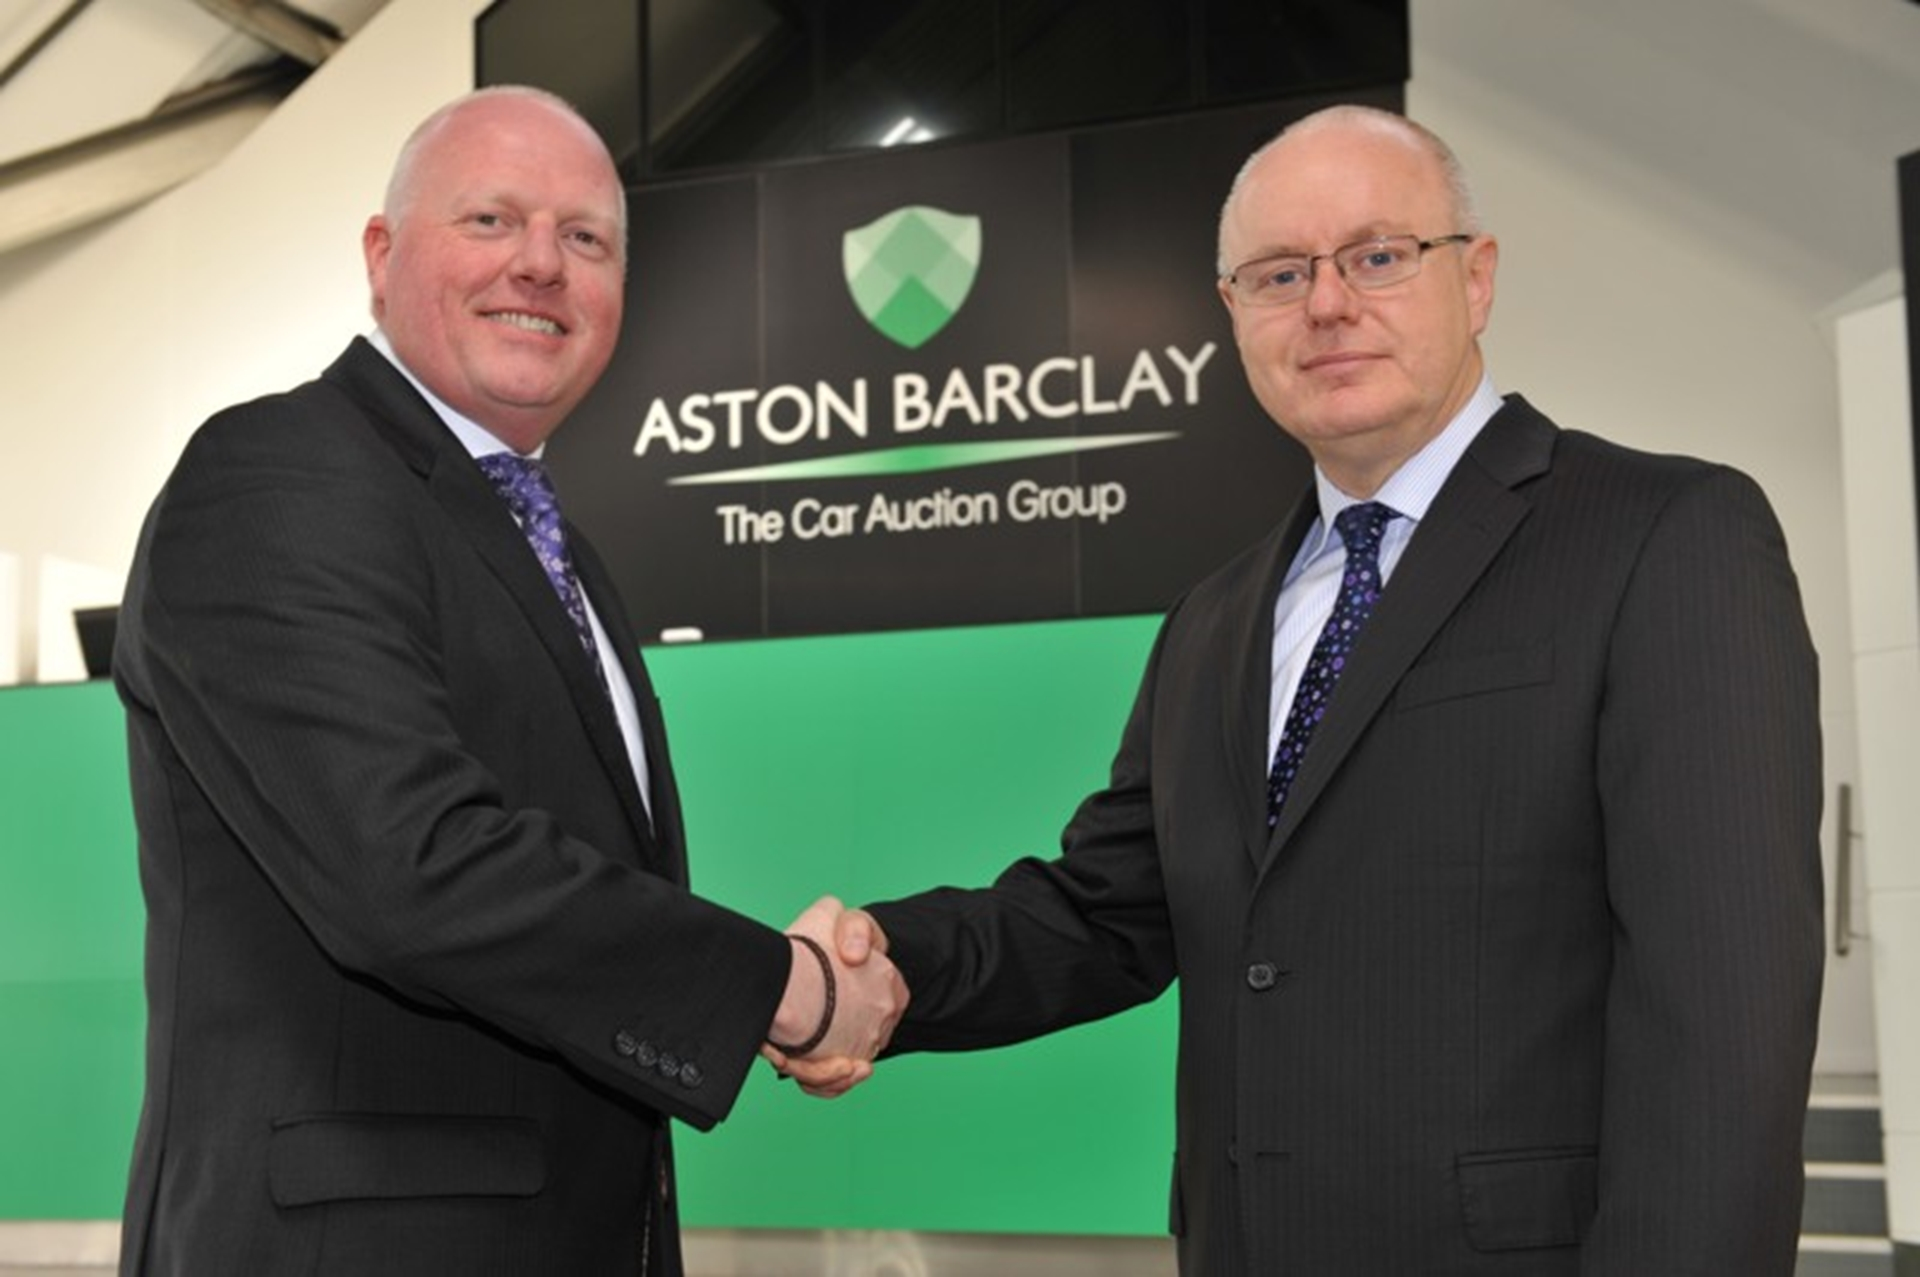 Aston Barclay Managing Director Tim Hudson welcomes Martin Potter